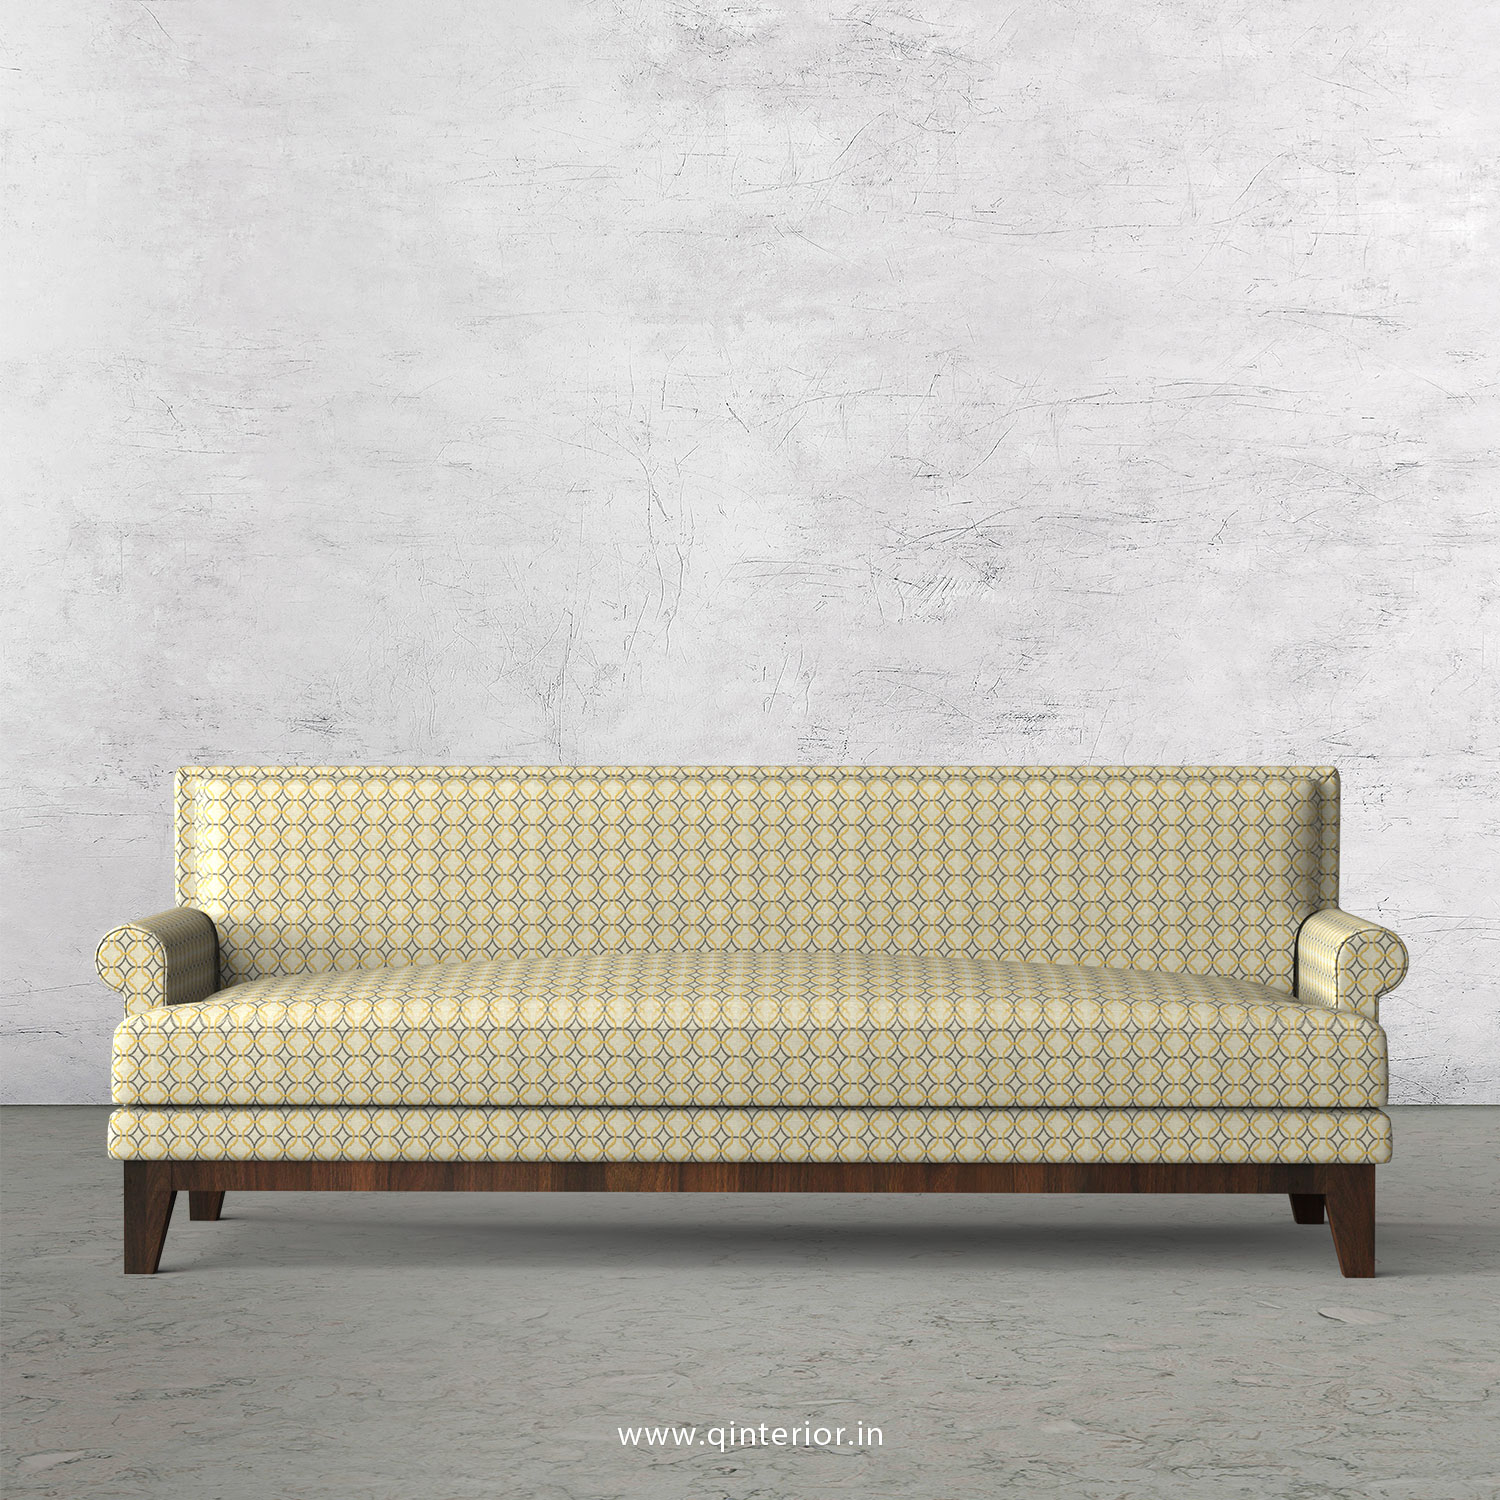 Aviana 3 Seater Sofa in Jacquard - SFA001 JQ30